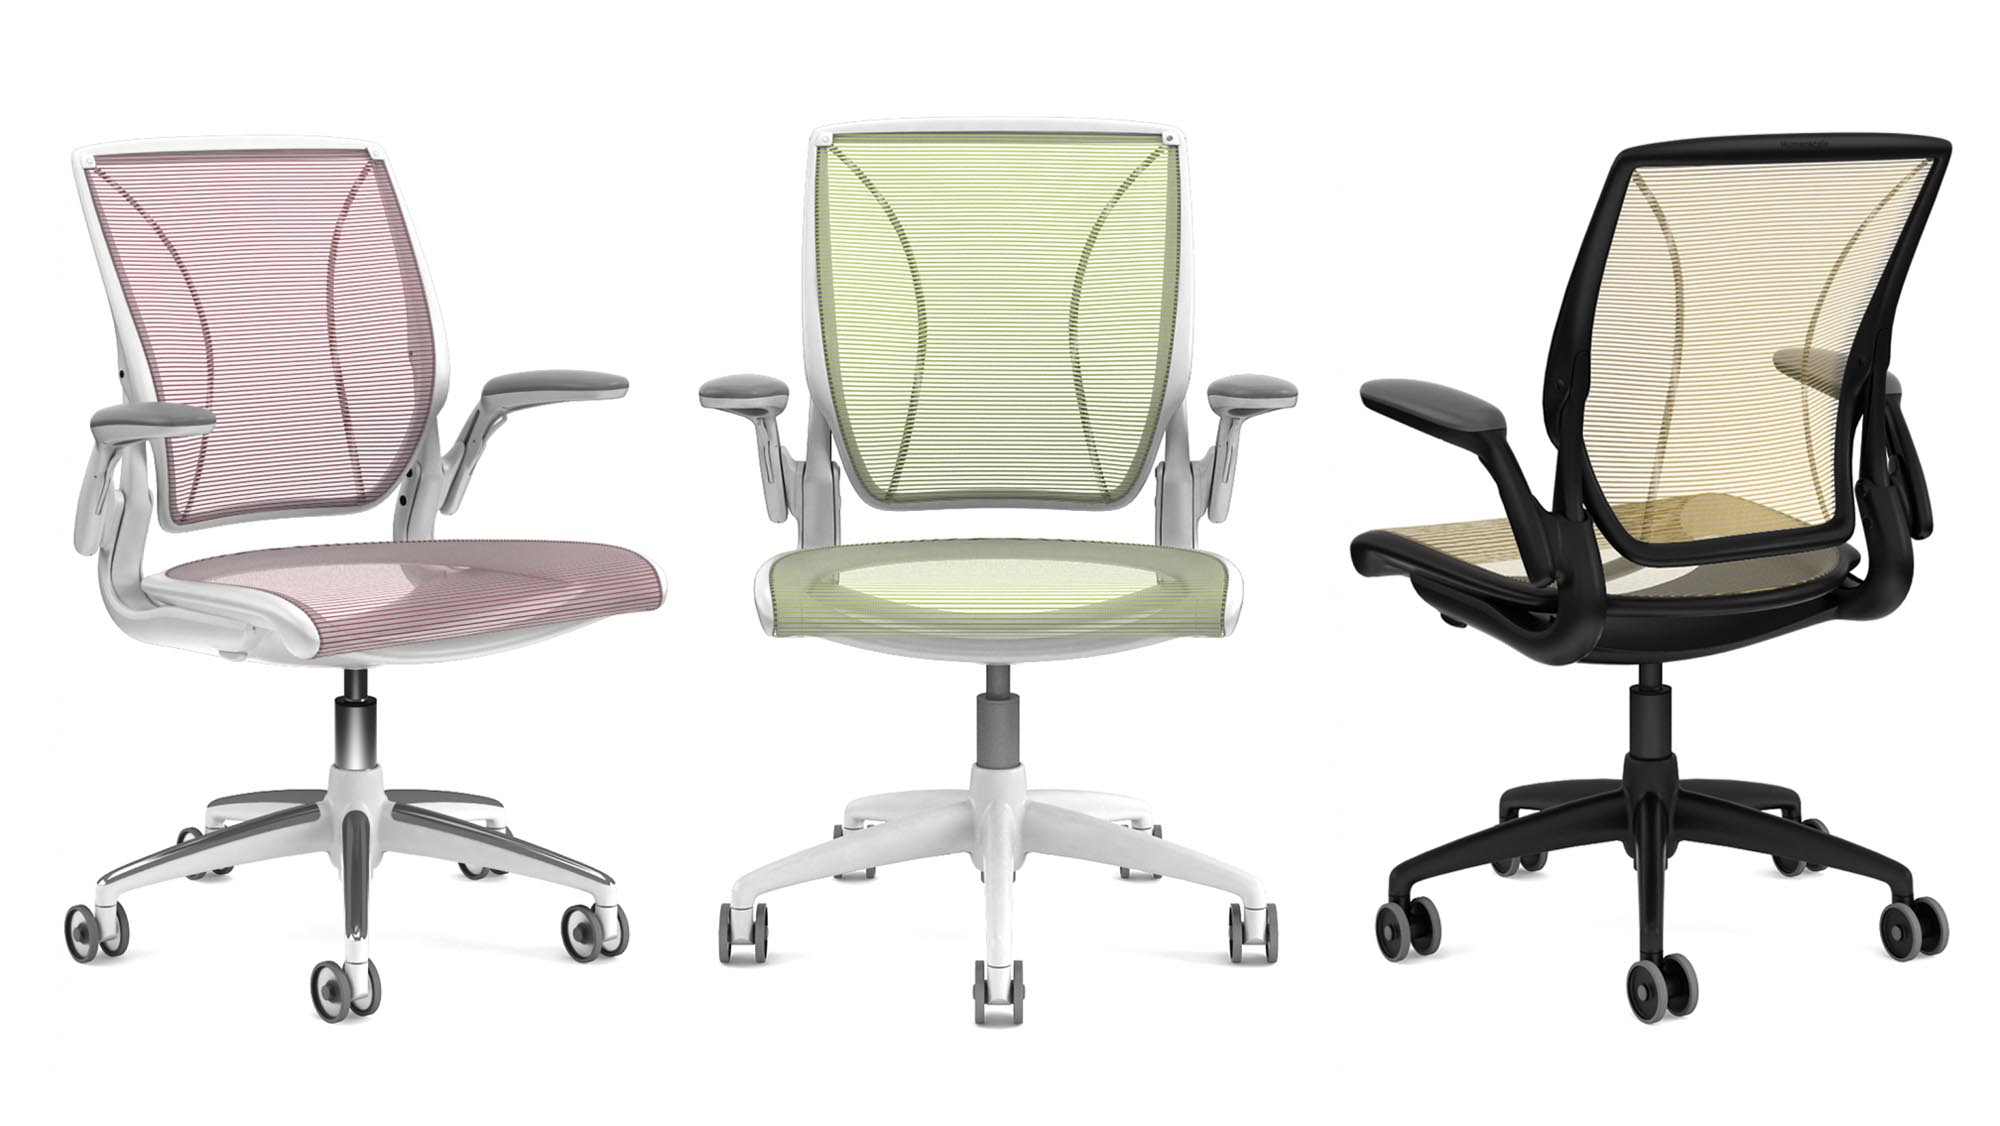 seatings manager bangalore chairs office medium chair revolving ample matrix mesh staff back product